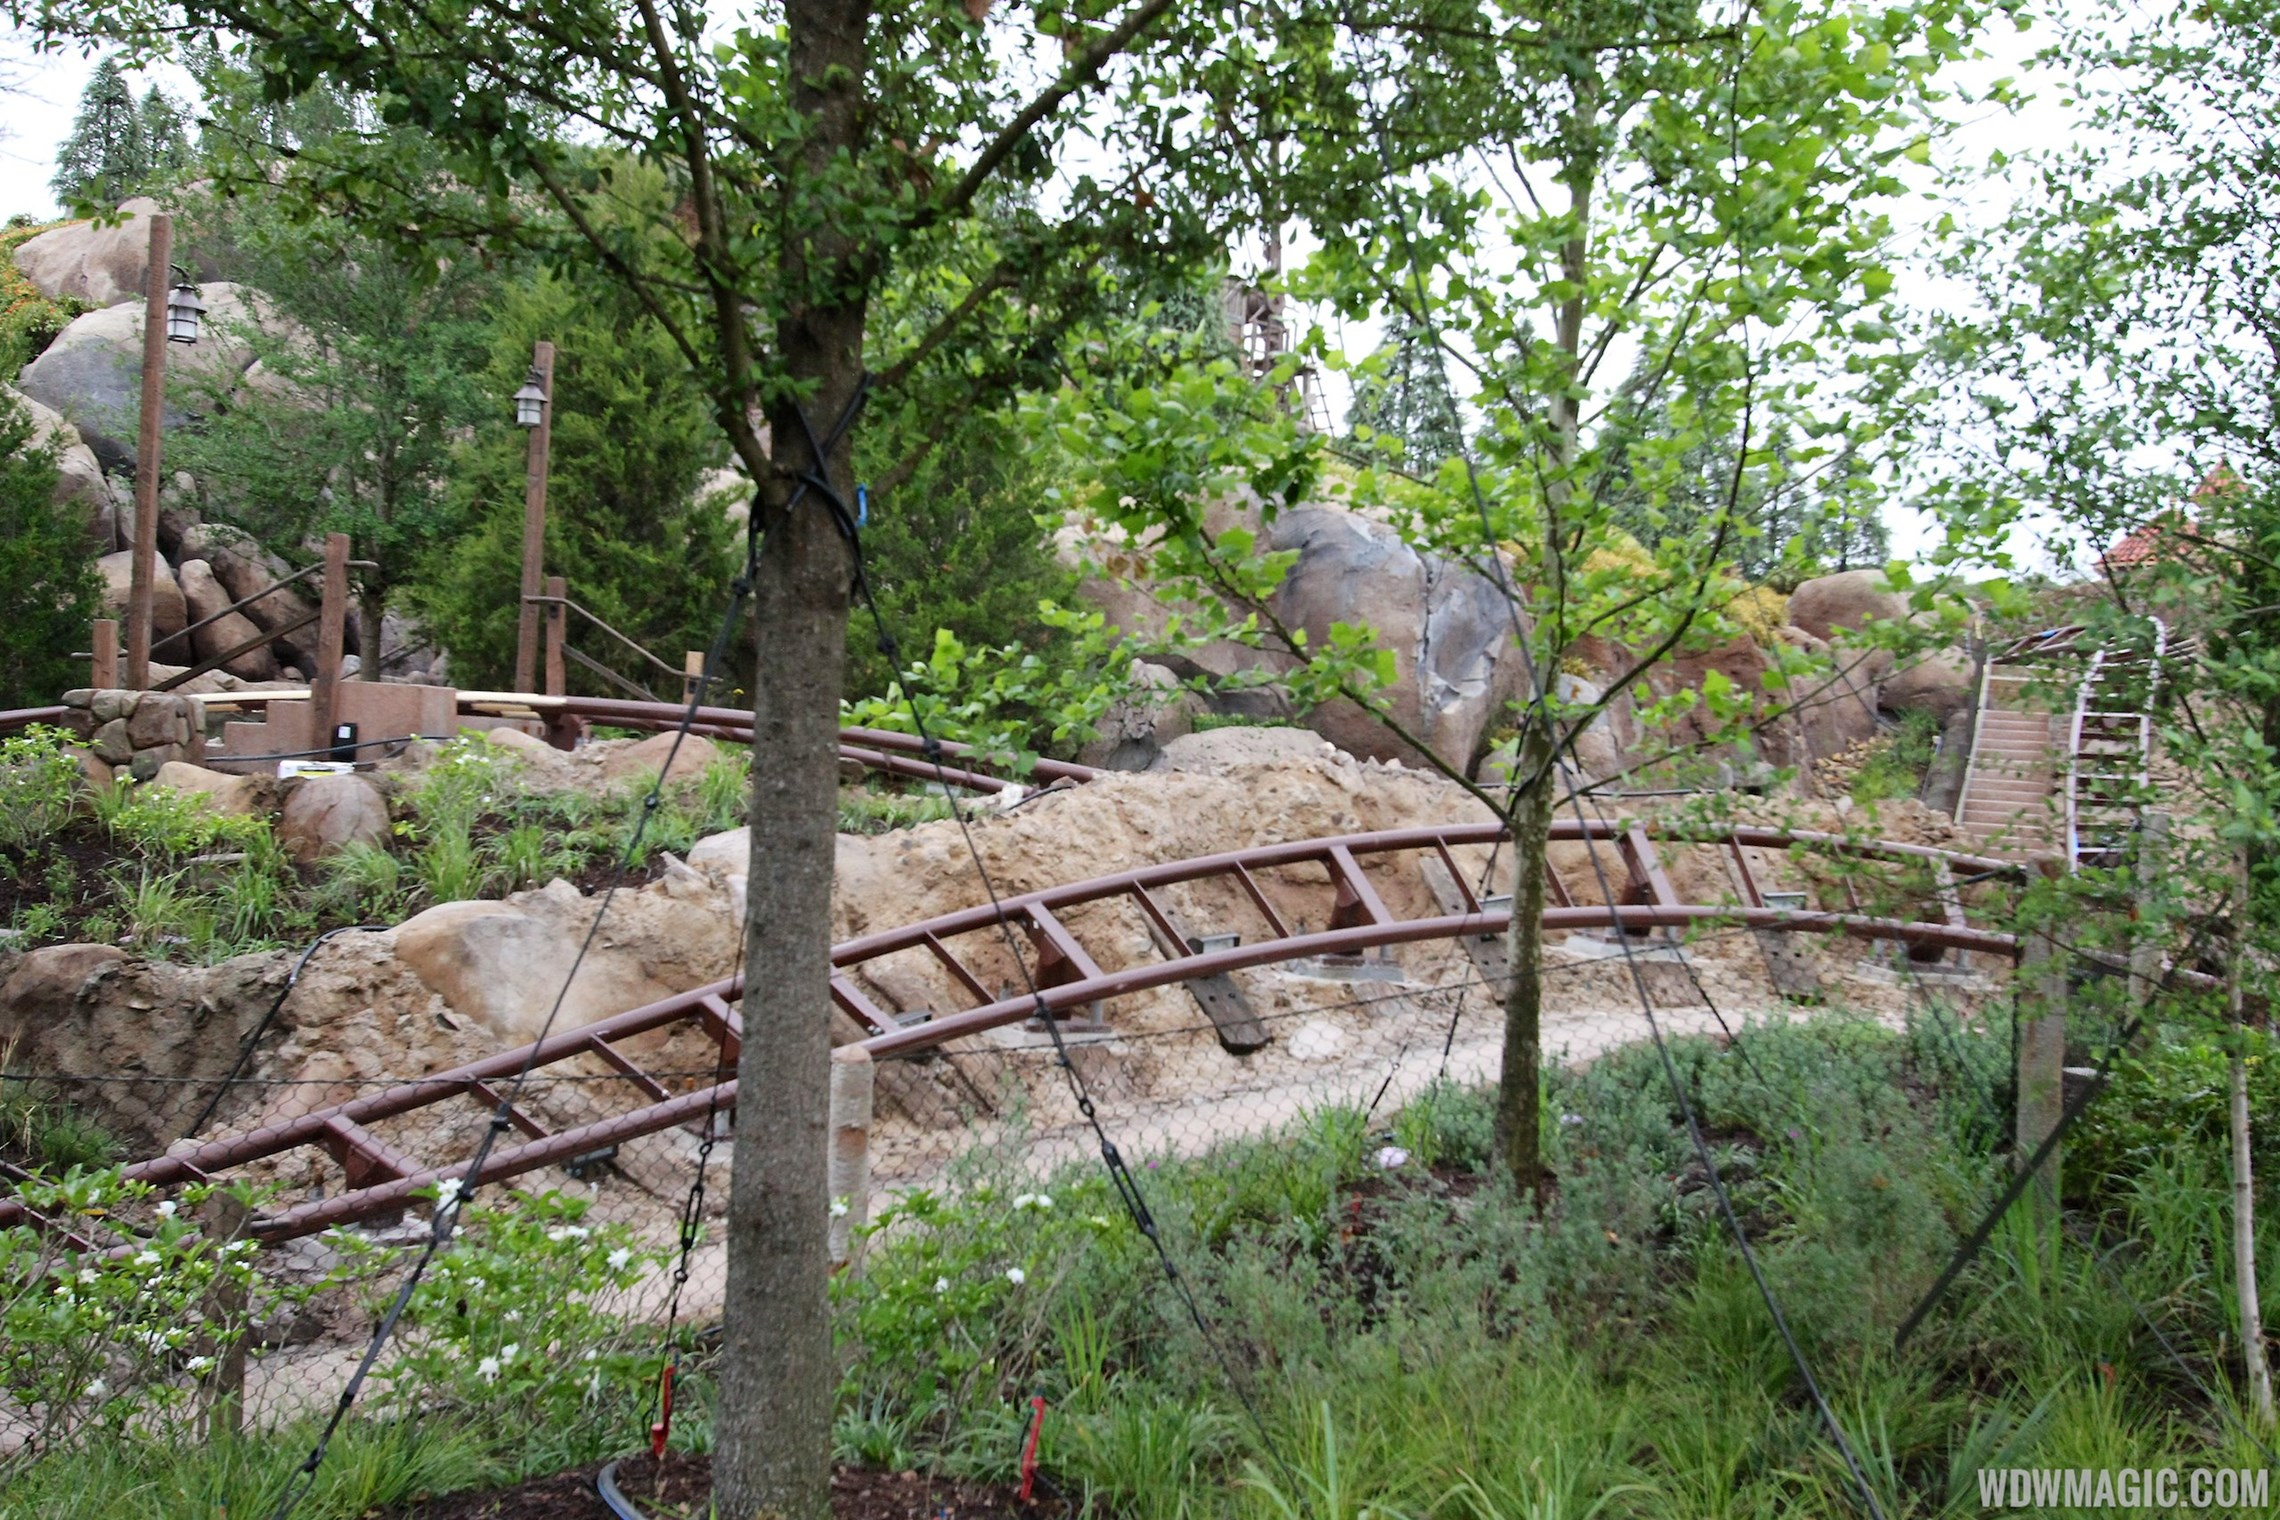 Seven Dwarfs Mine Train coaster more walls down